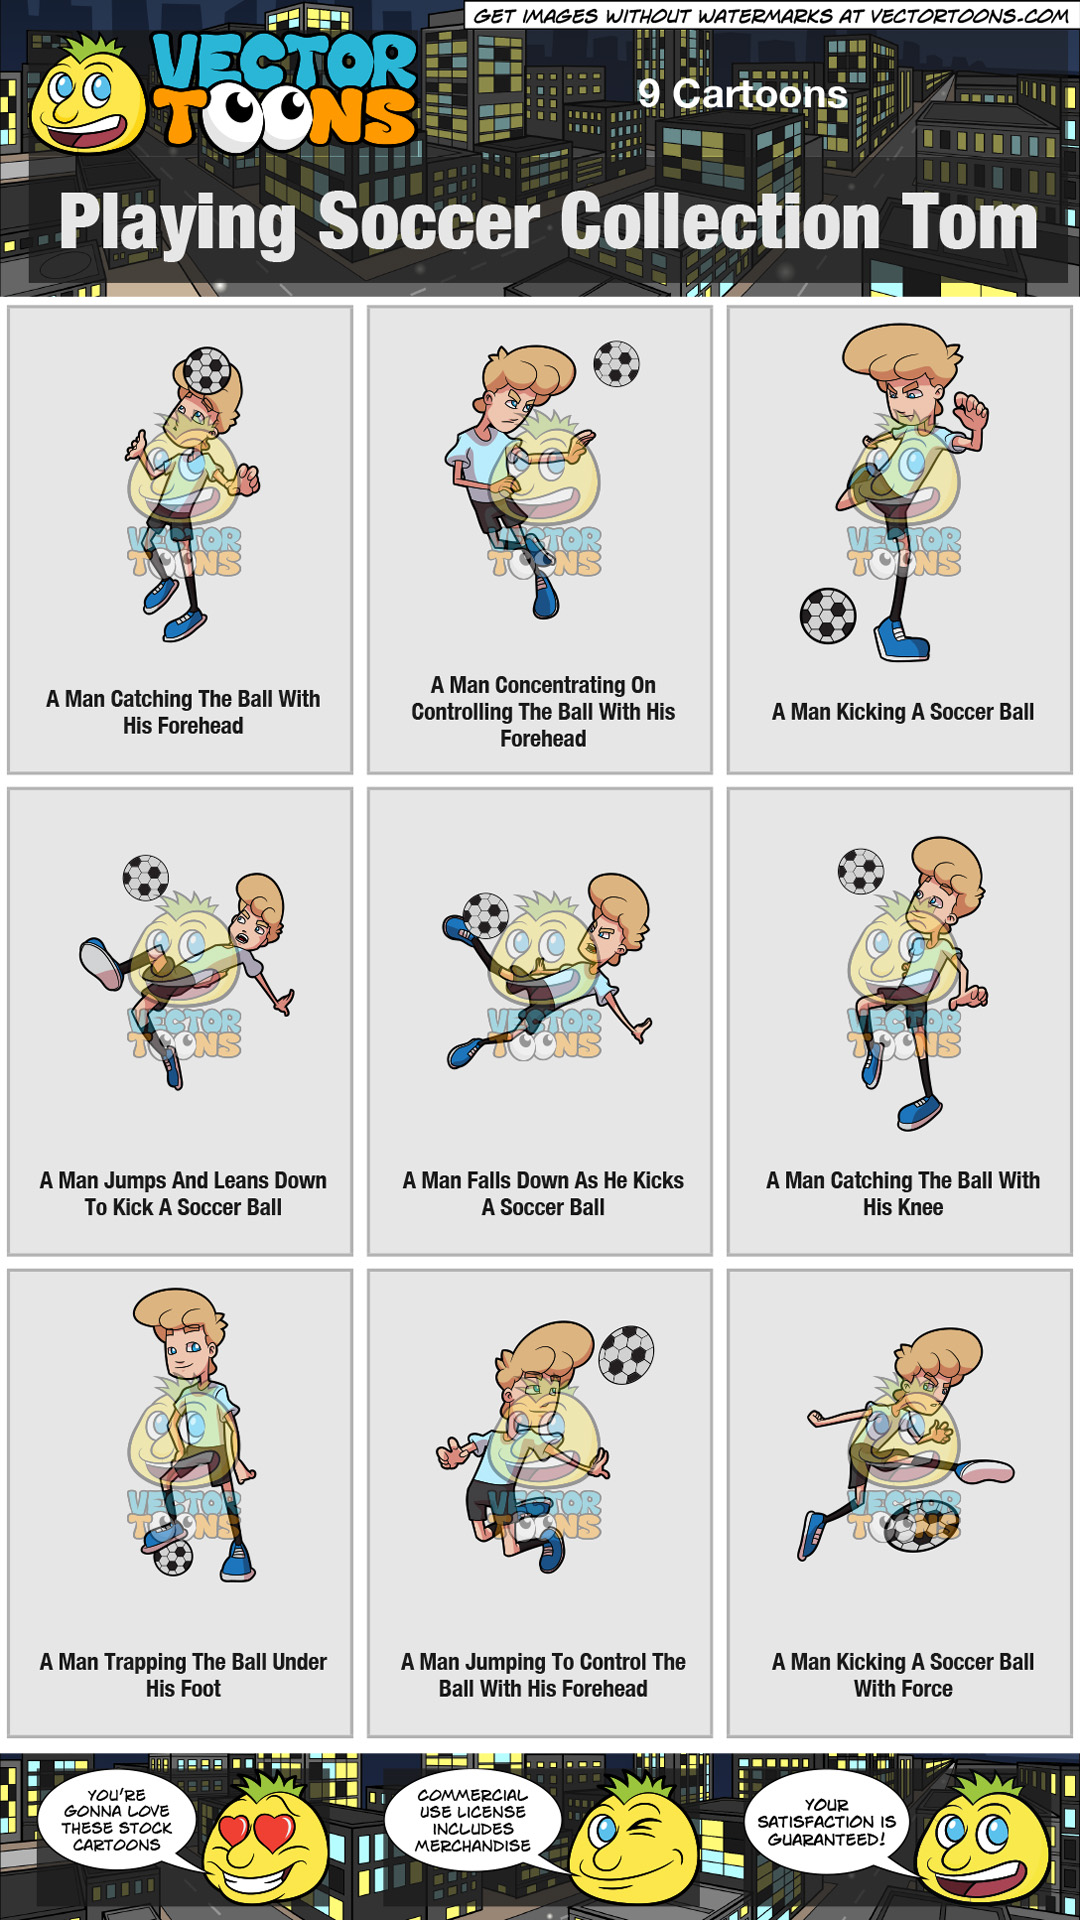 Playing Soccer Collection Tom thumbnail